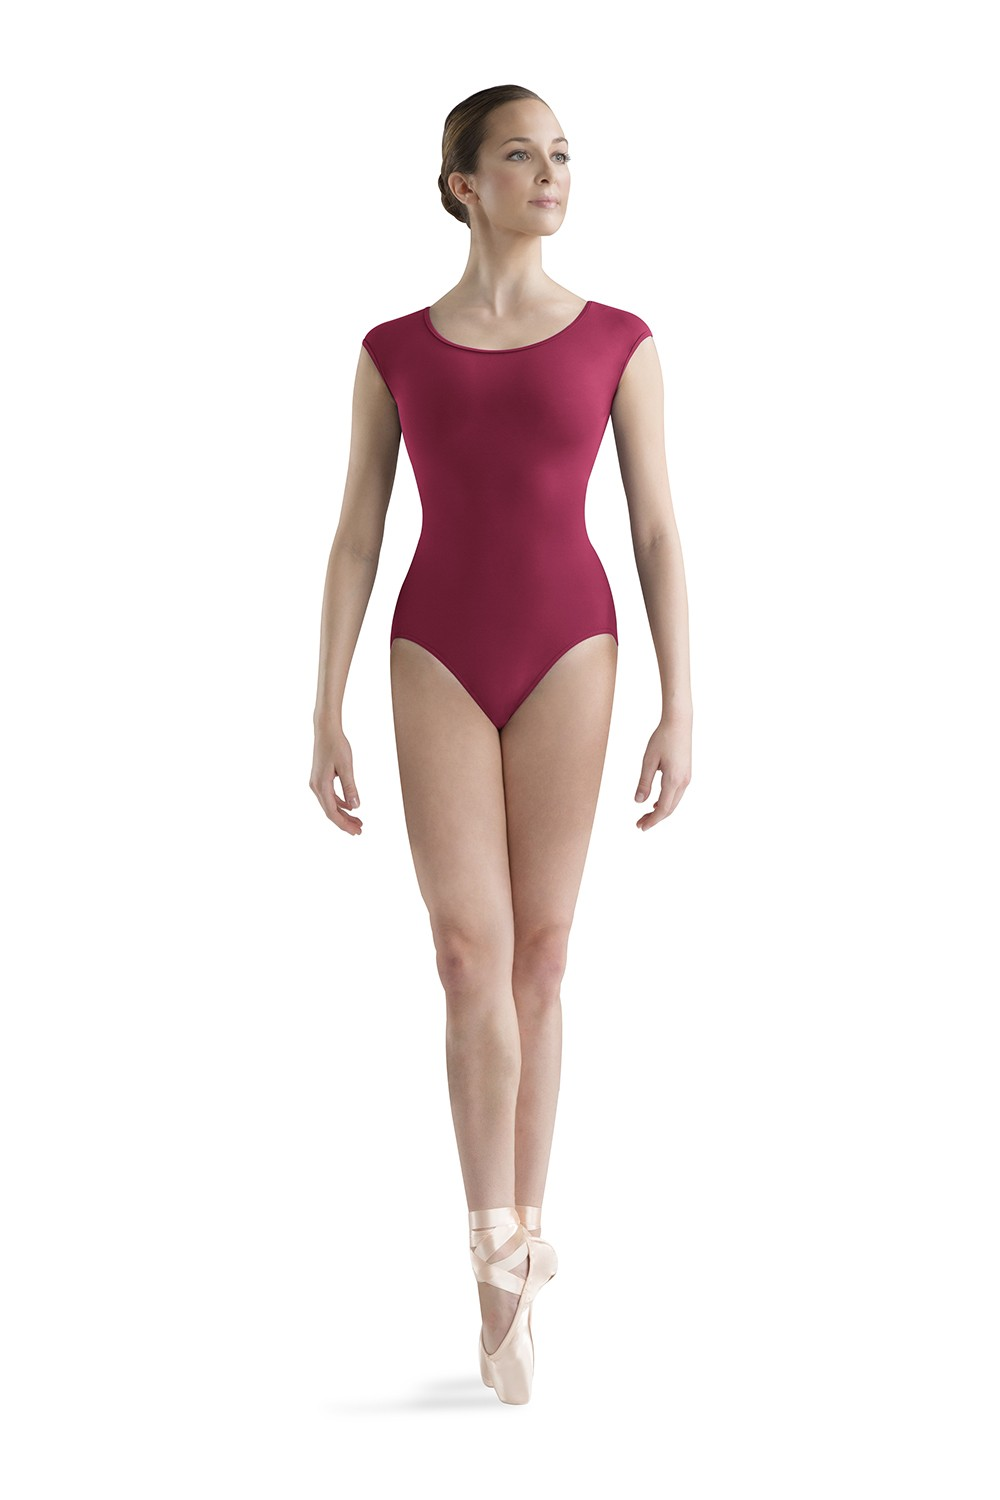 Cut Away Back Cap Sleeve Women's Dance Leotards